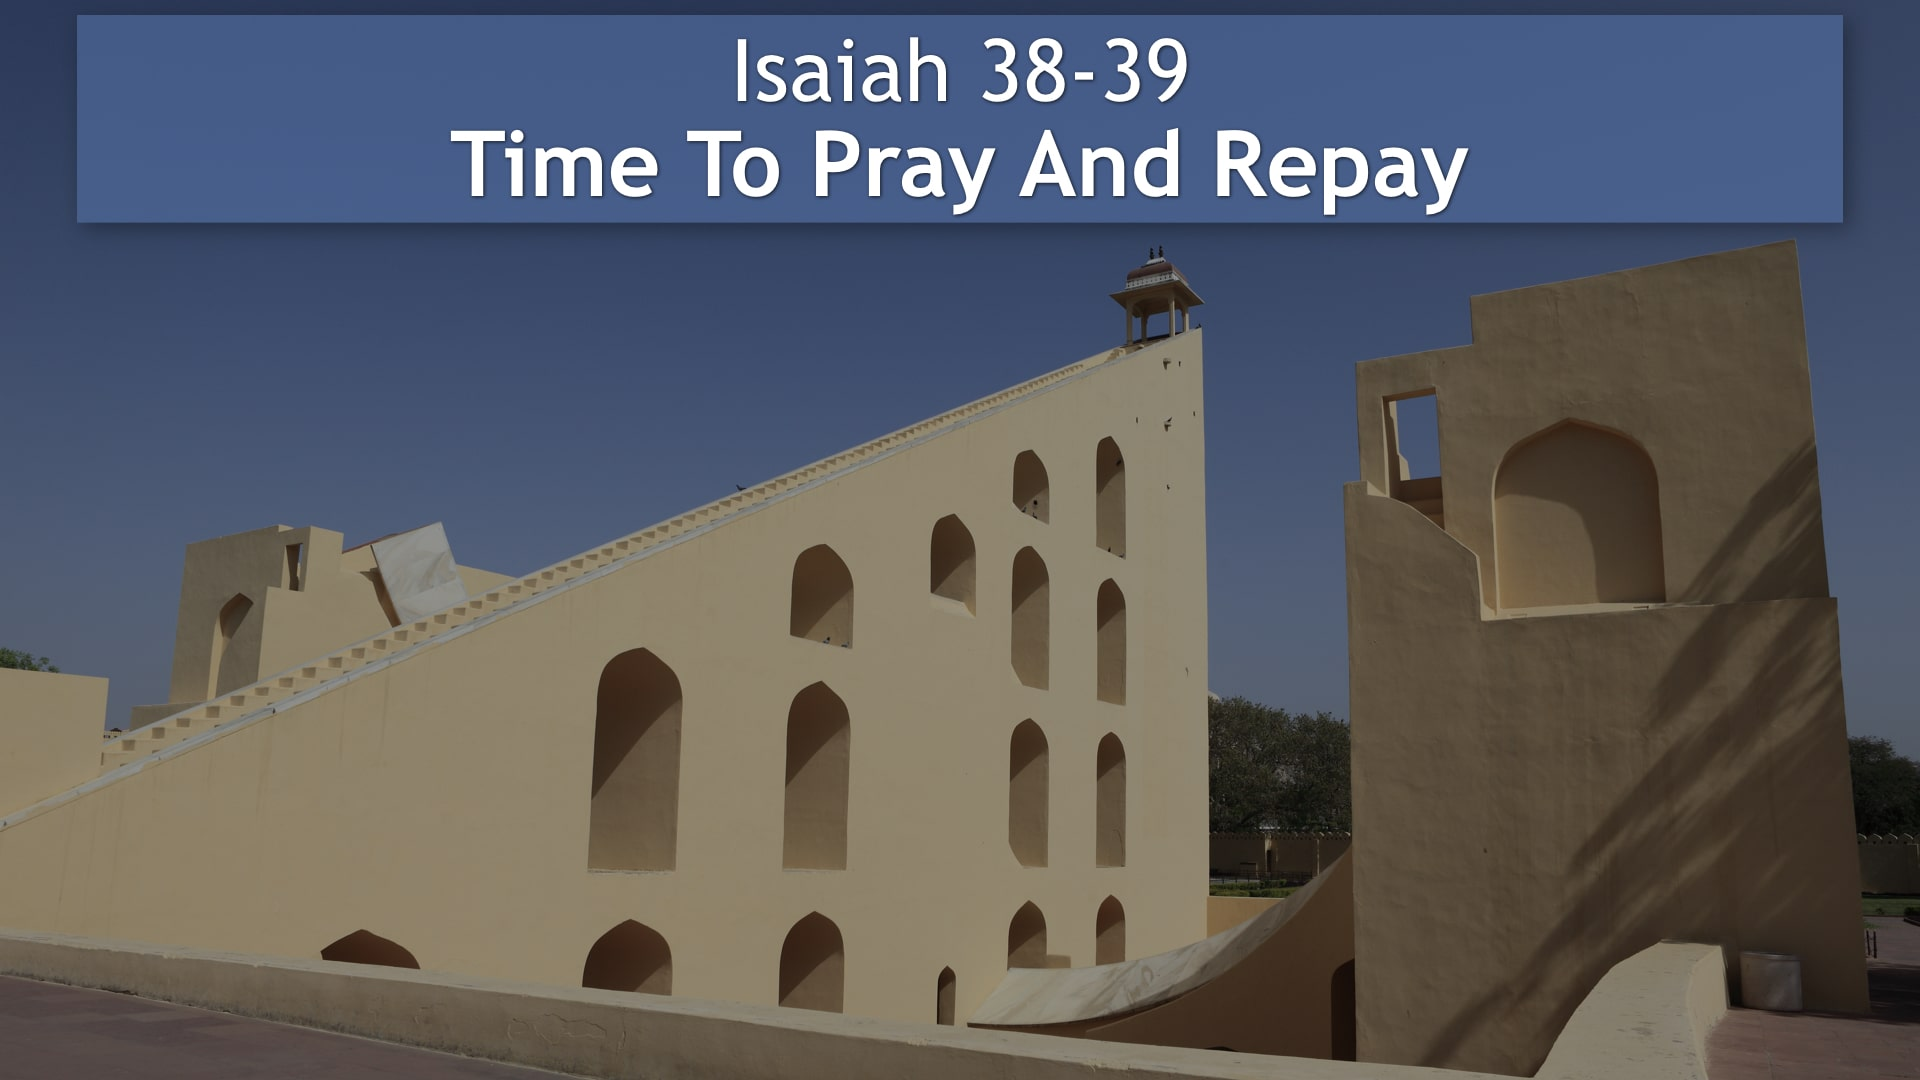 Isaiah 38-39, Time To Pray And Repay